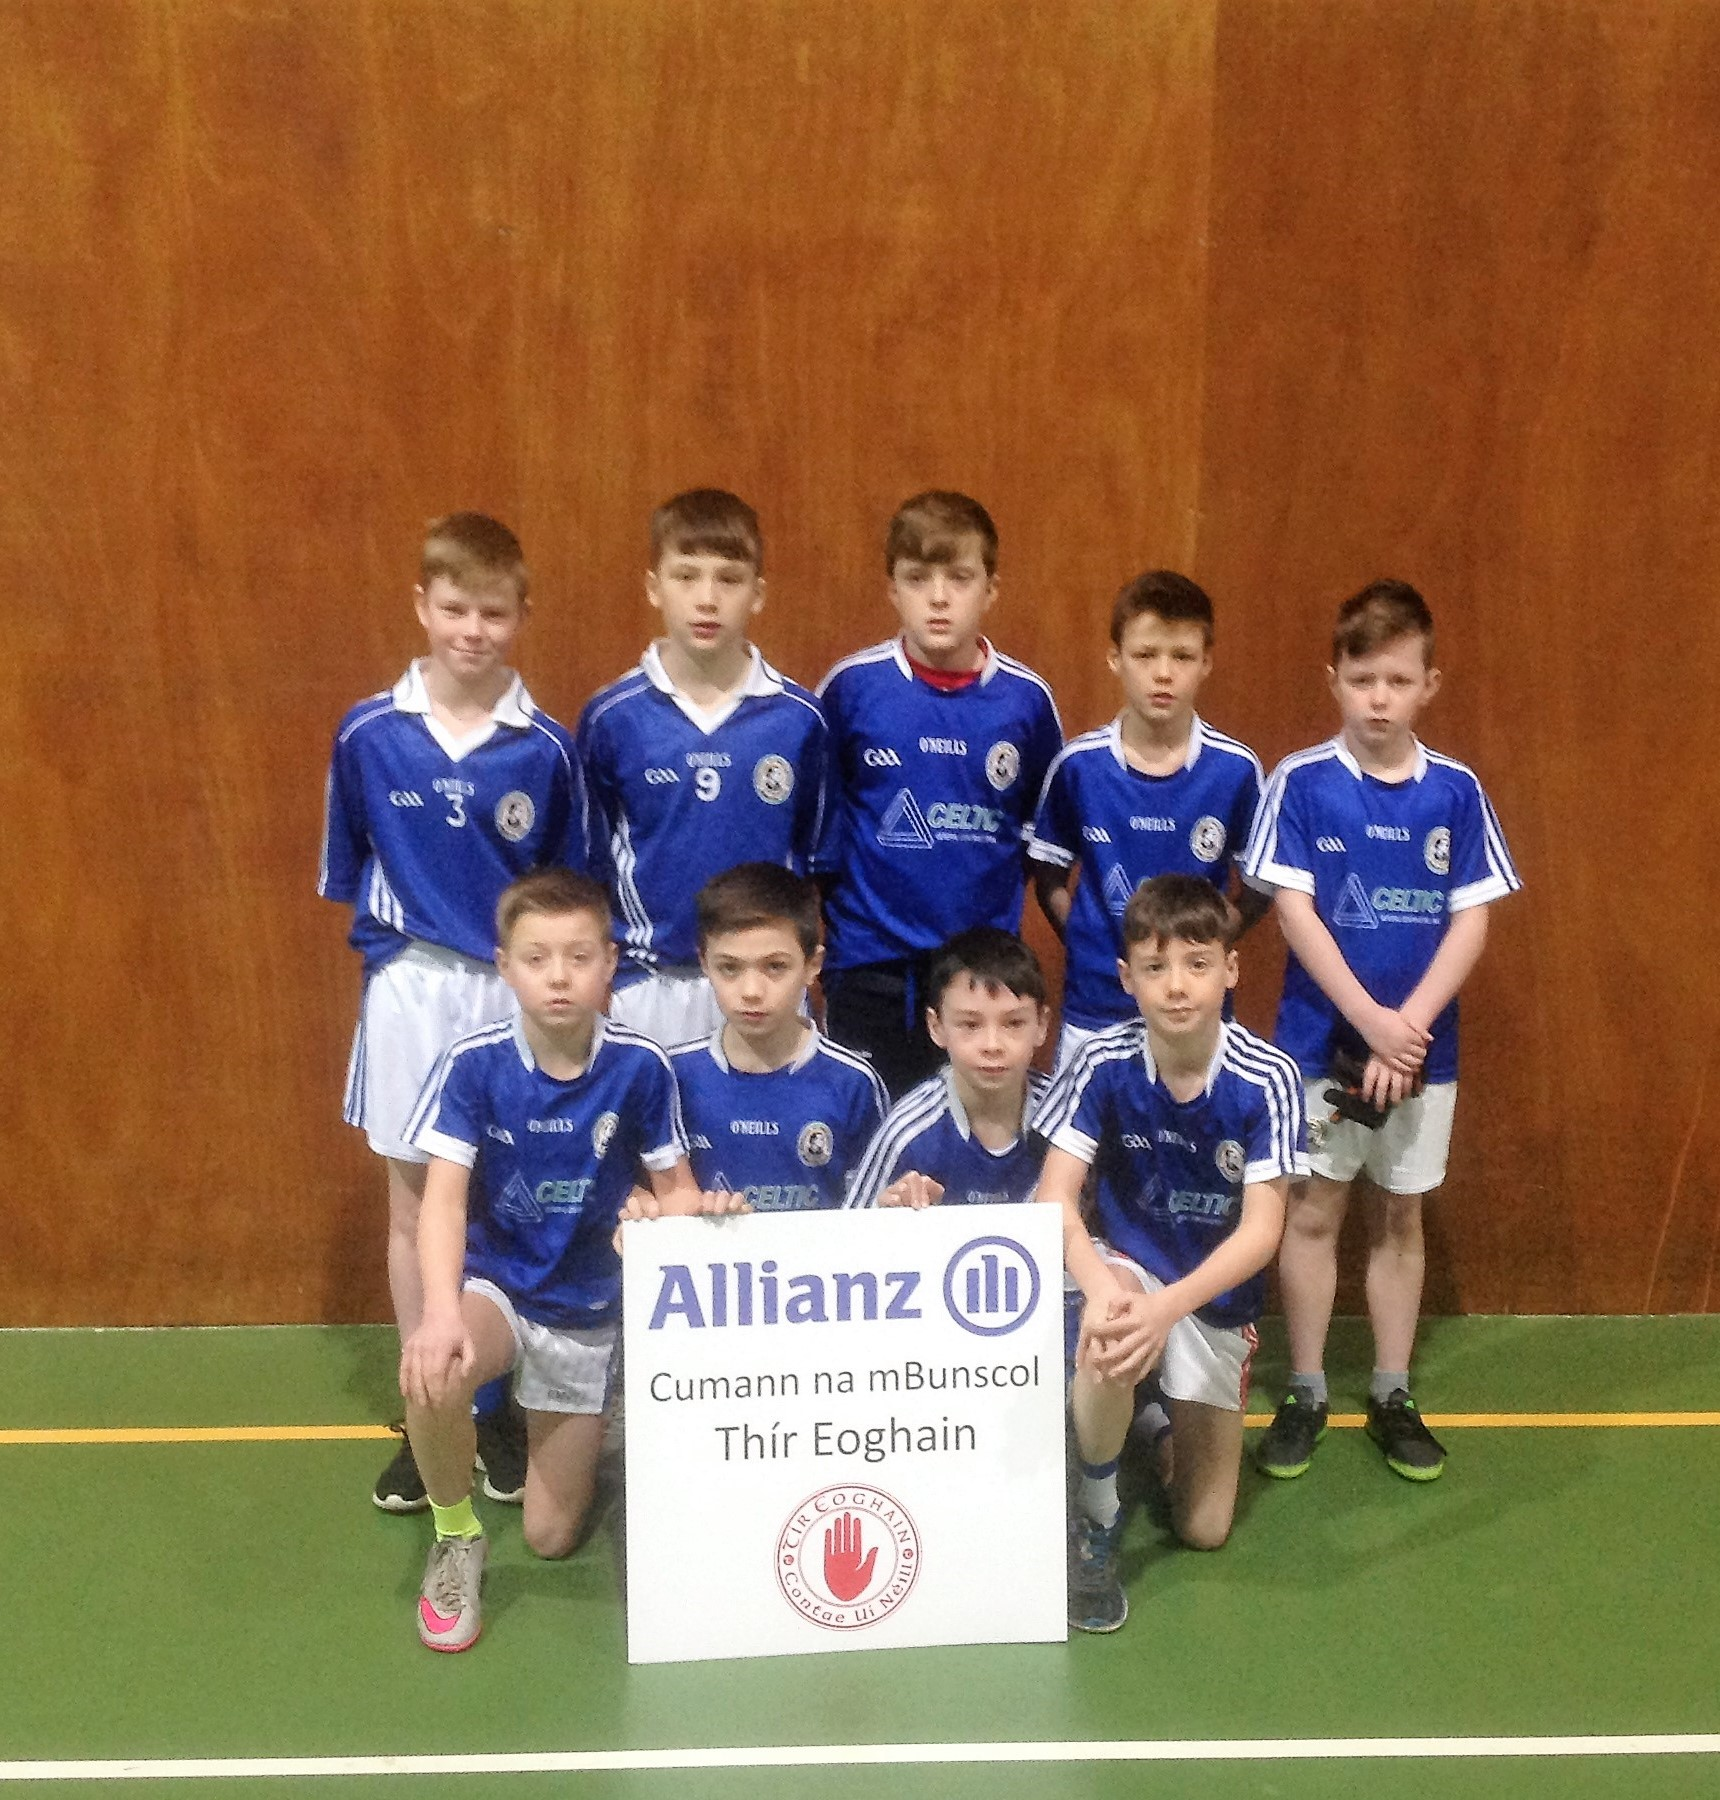 ALLIANZ Cumann na mBunscol – BOYS' INDOOR FOOTBALL HEAT 1: Cookstown